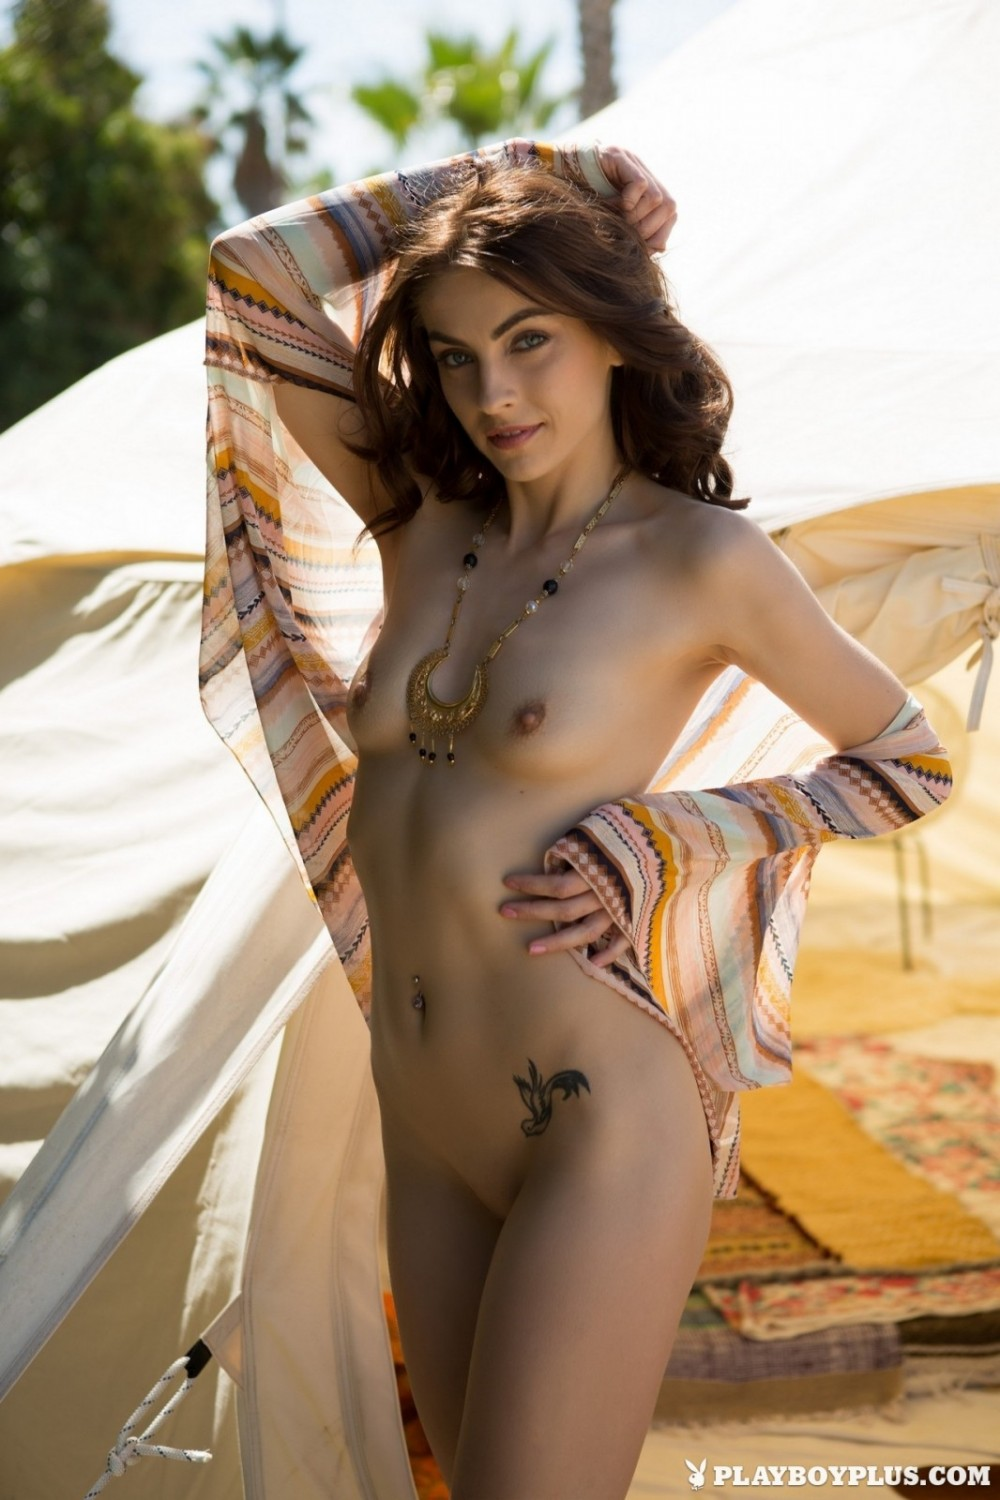 Naked chick gets satisfaction in the tent